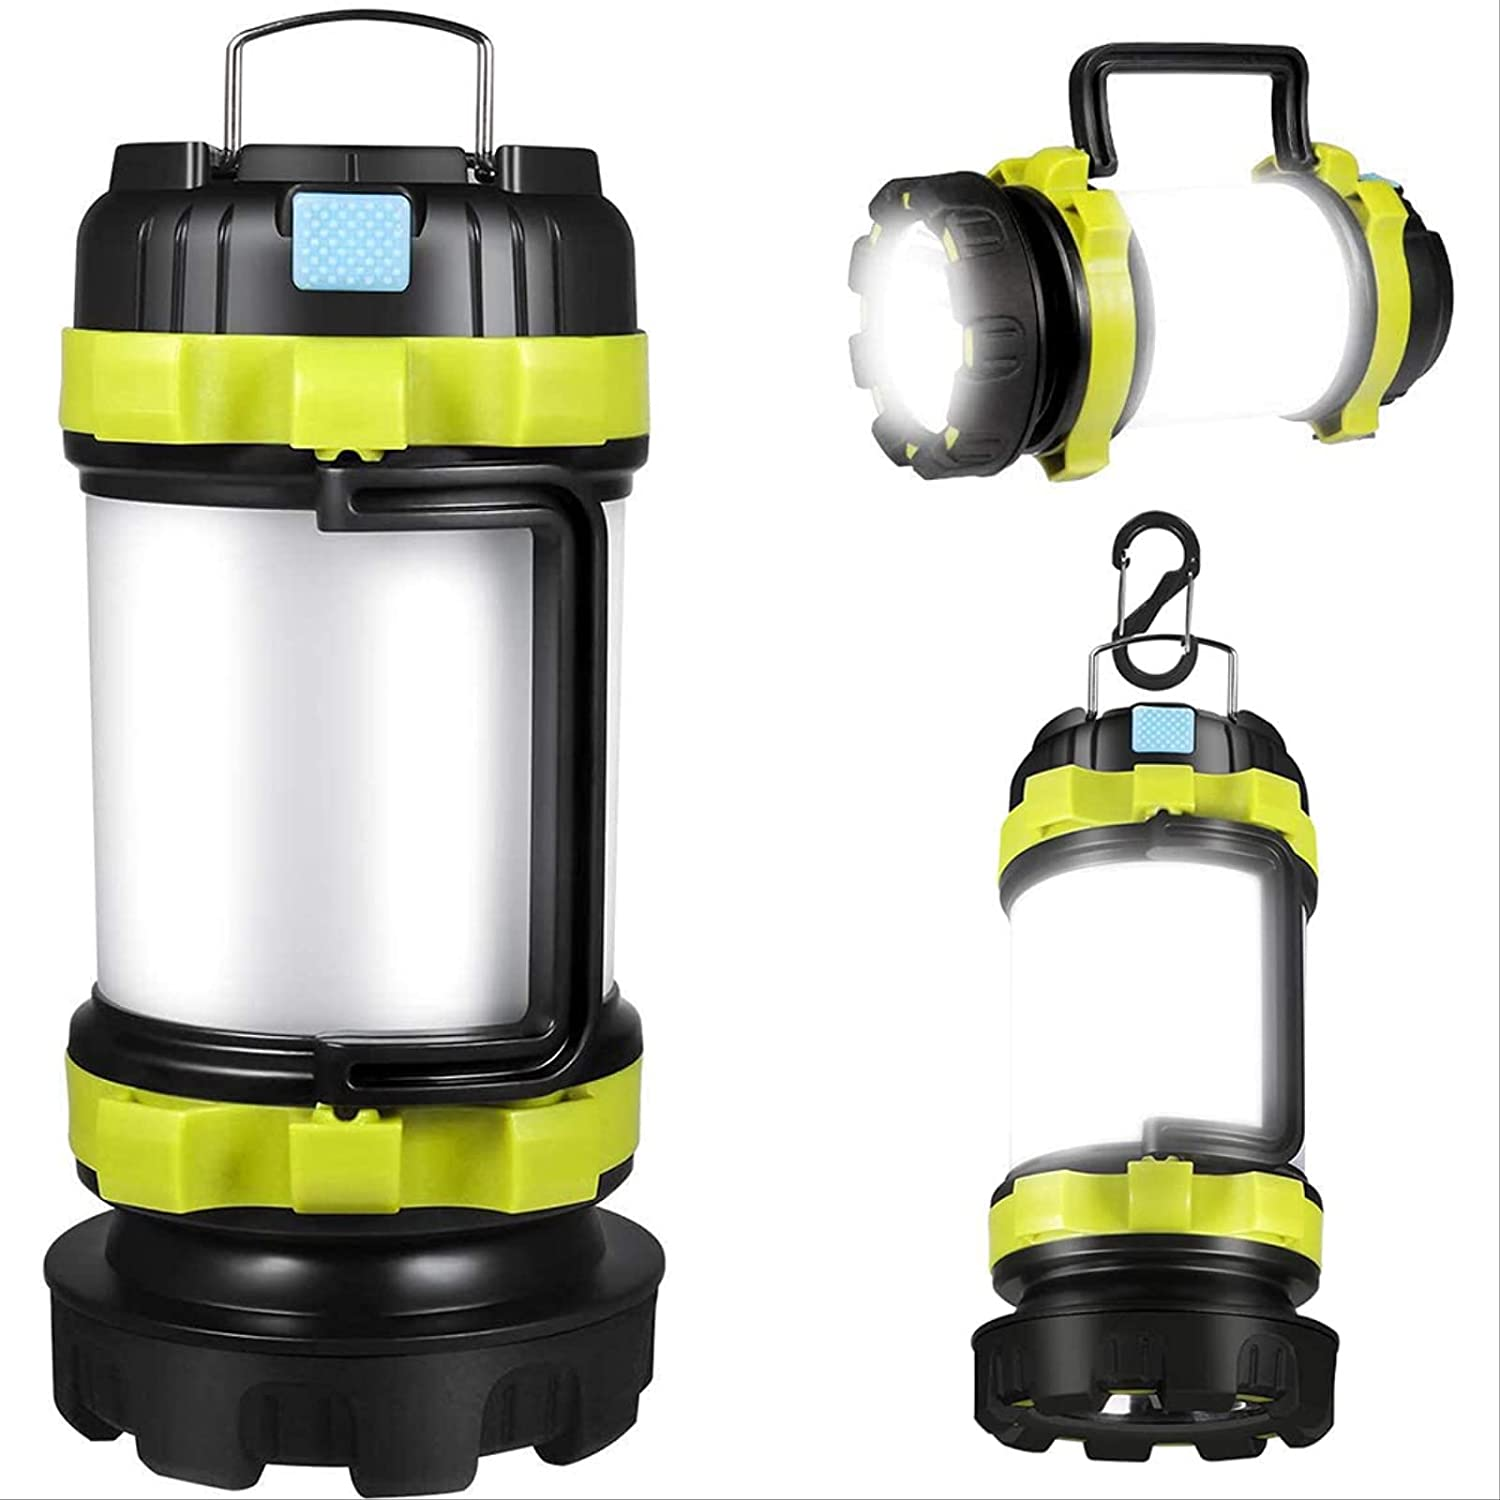 Camping Ultra-Cheap Deals Max 75% OFF Lantern Rechargeable LED Waterproof Portable Flashlight